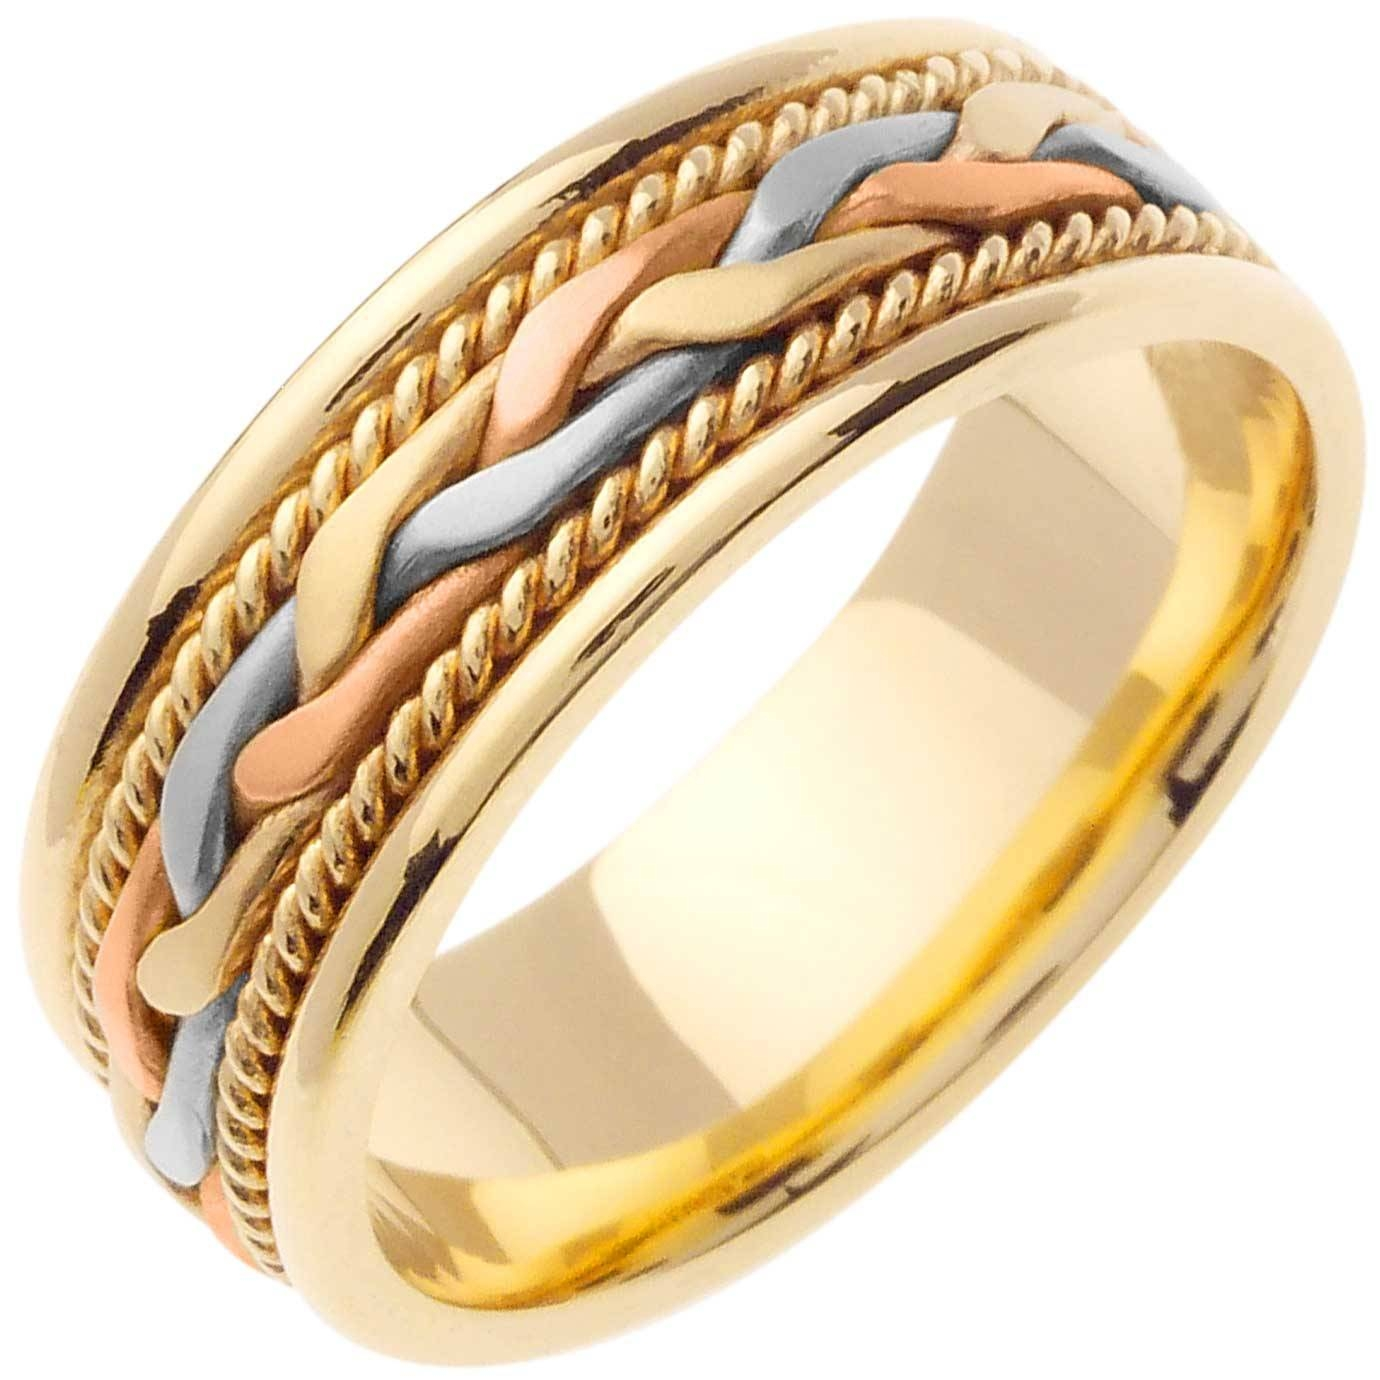 14K Tri Color Gold French Braid Band 7Mm  3000182 – Shop At Intended For Braided Wedding Bands (View 2 of 15)